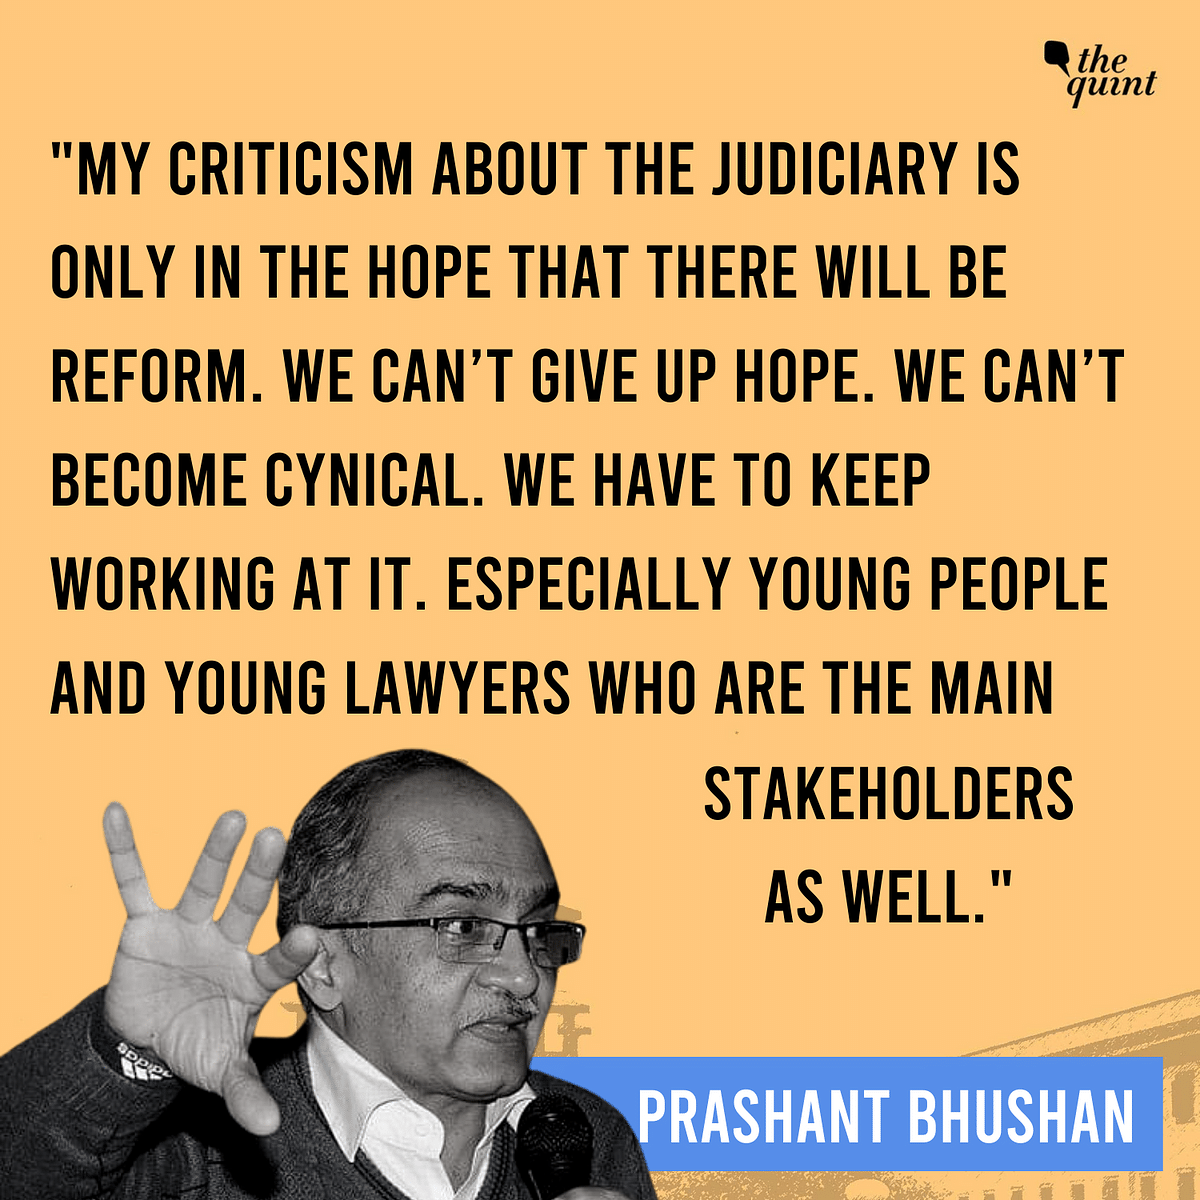 'Most Evil Govt Ever Seen!': Bhushan on State, Judiciary & Hope